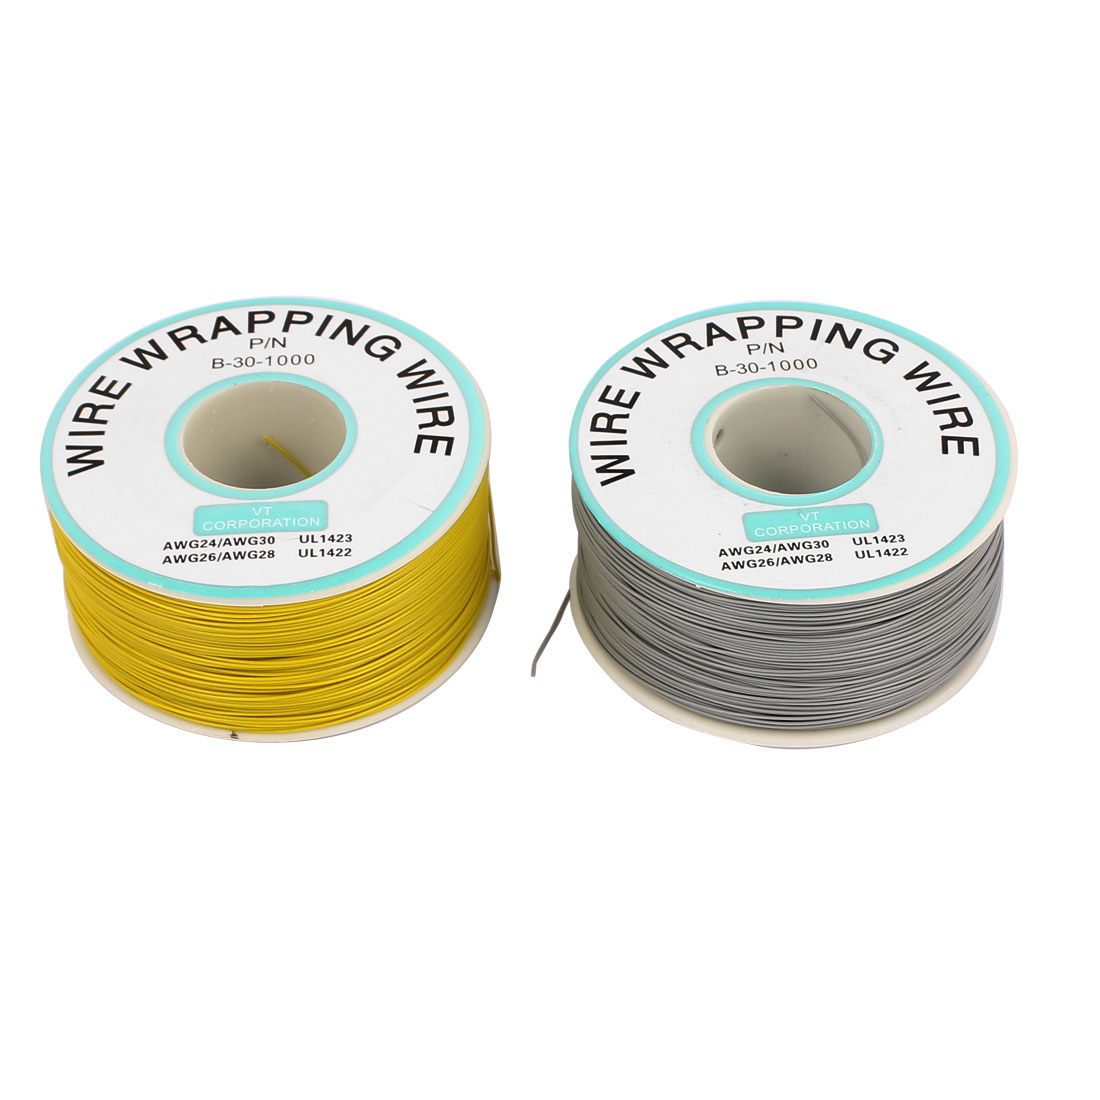 2 Pcs High Temperature Resistant Wraping Wire Cable Cord Yellow Grey